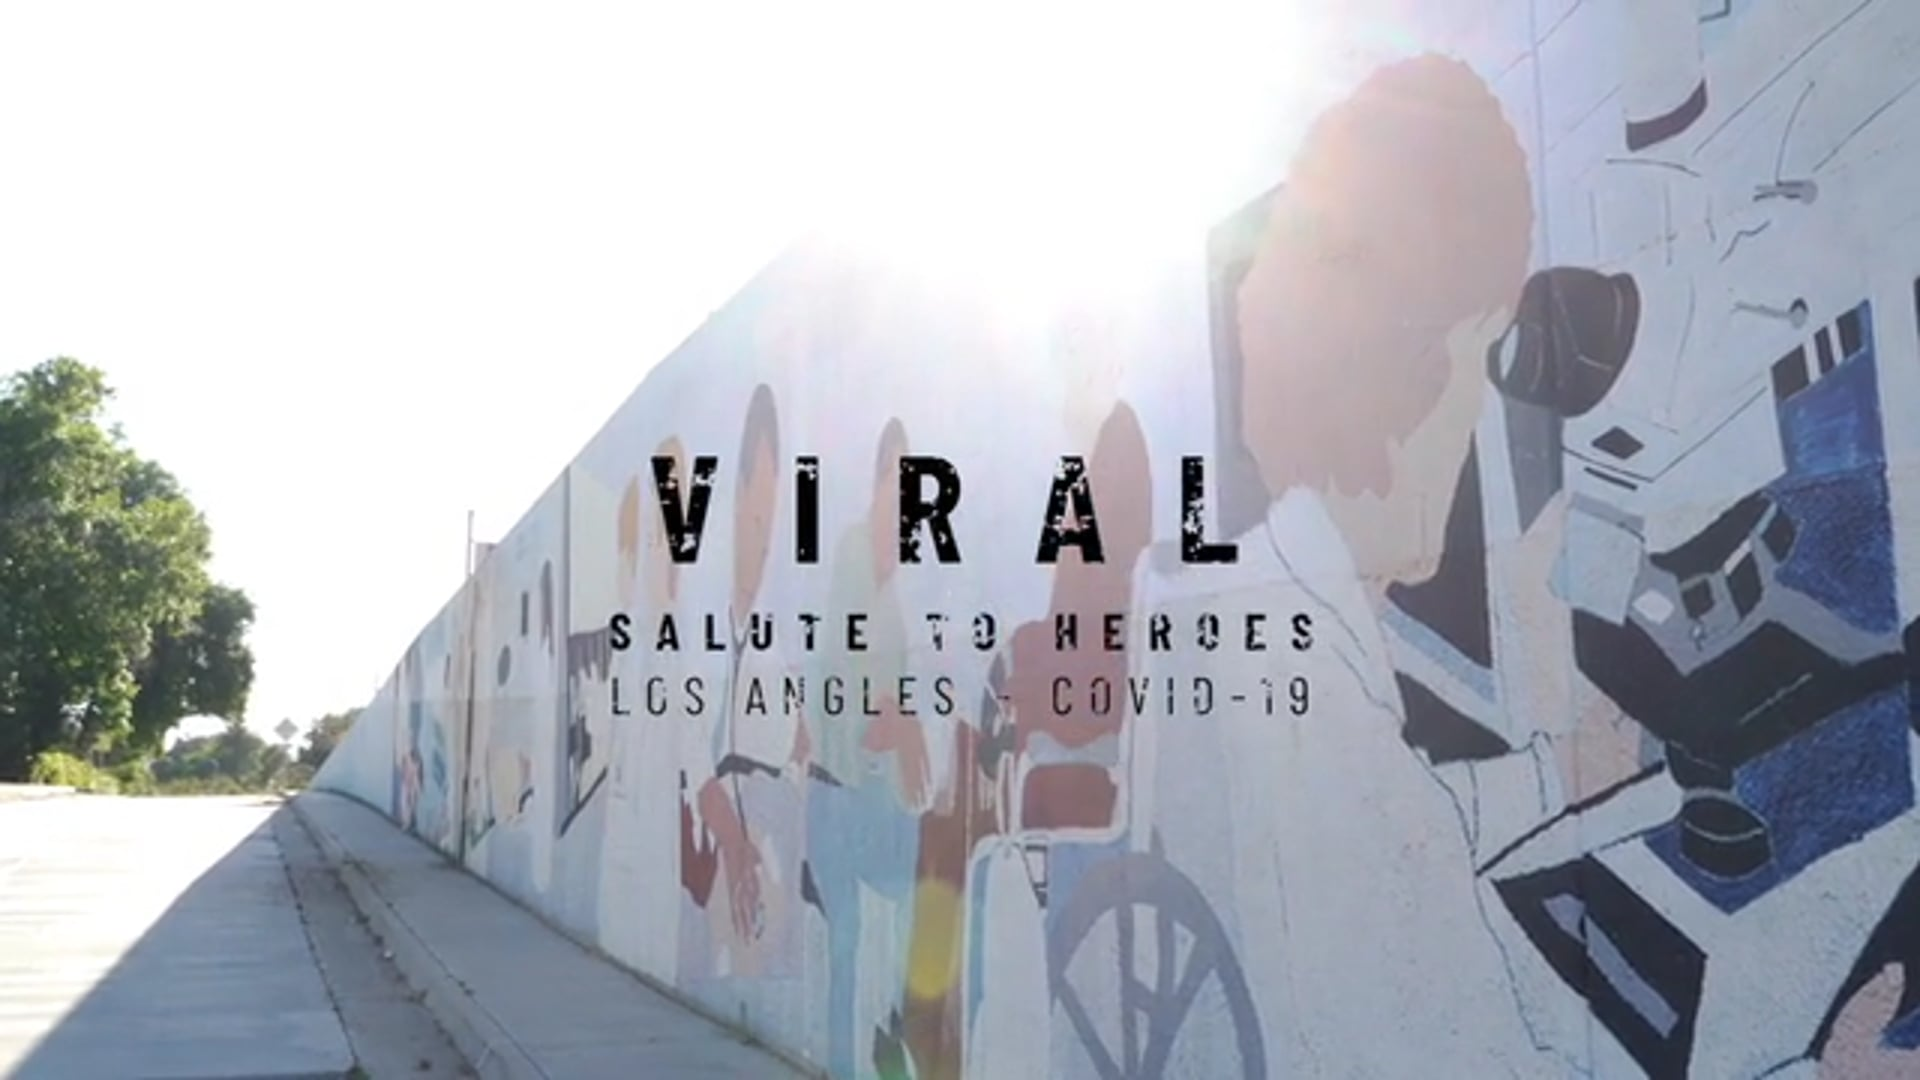 VIRAL (SALUTE TO HEROES)